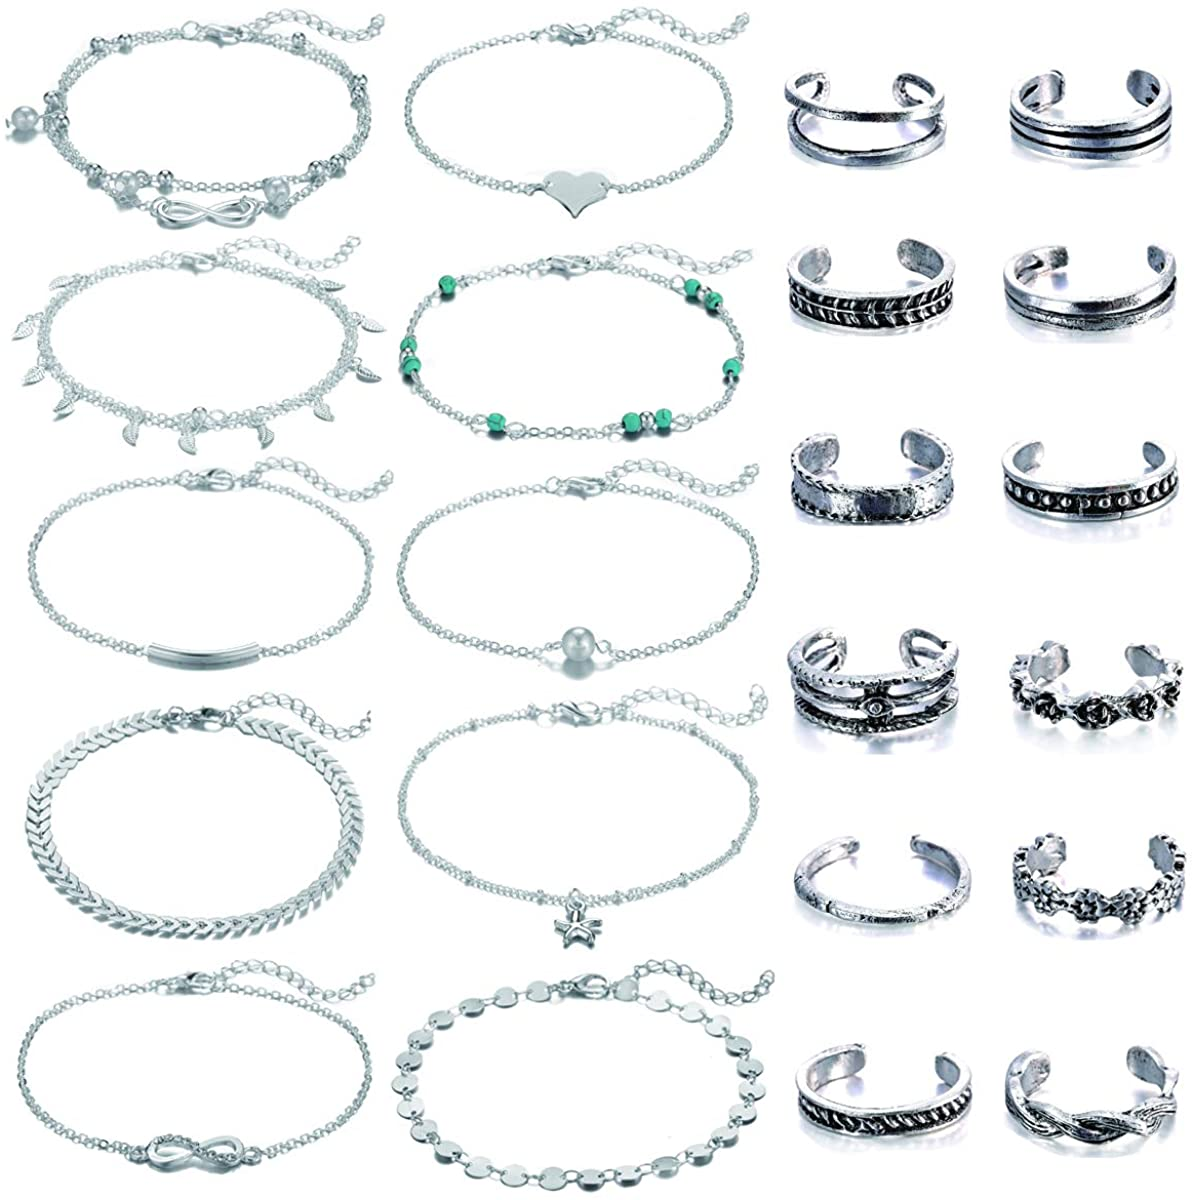 Dremcoue Adjustable Beach Anklets Toe Rings for Women Girls Band Open Toe Ring Anklet Bracelets Chains Beach Foot Jewelry Set 15-22 pcs